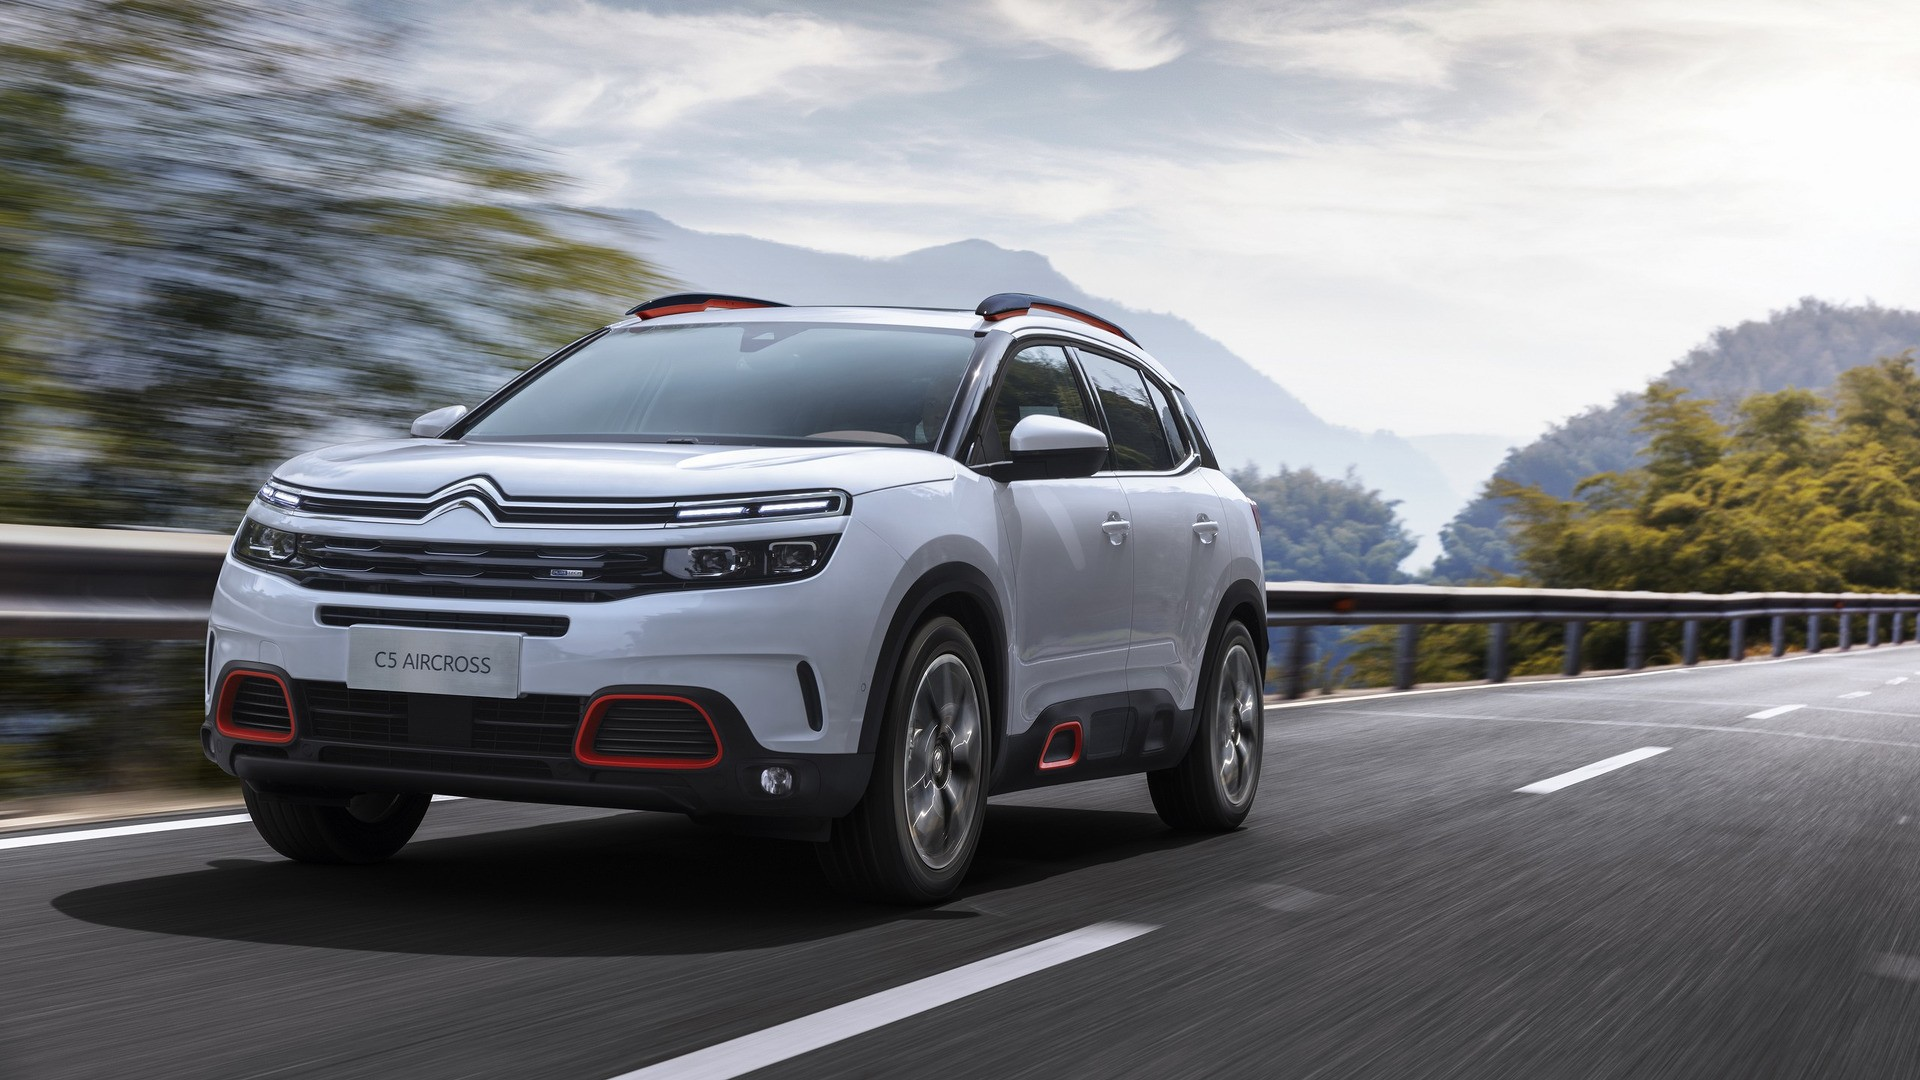 citroen debuts all new c5 aircross dubbed most comfortable suv of its time autoevolution. Black Bedroom Furniture Sets. Home Design Ideas